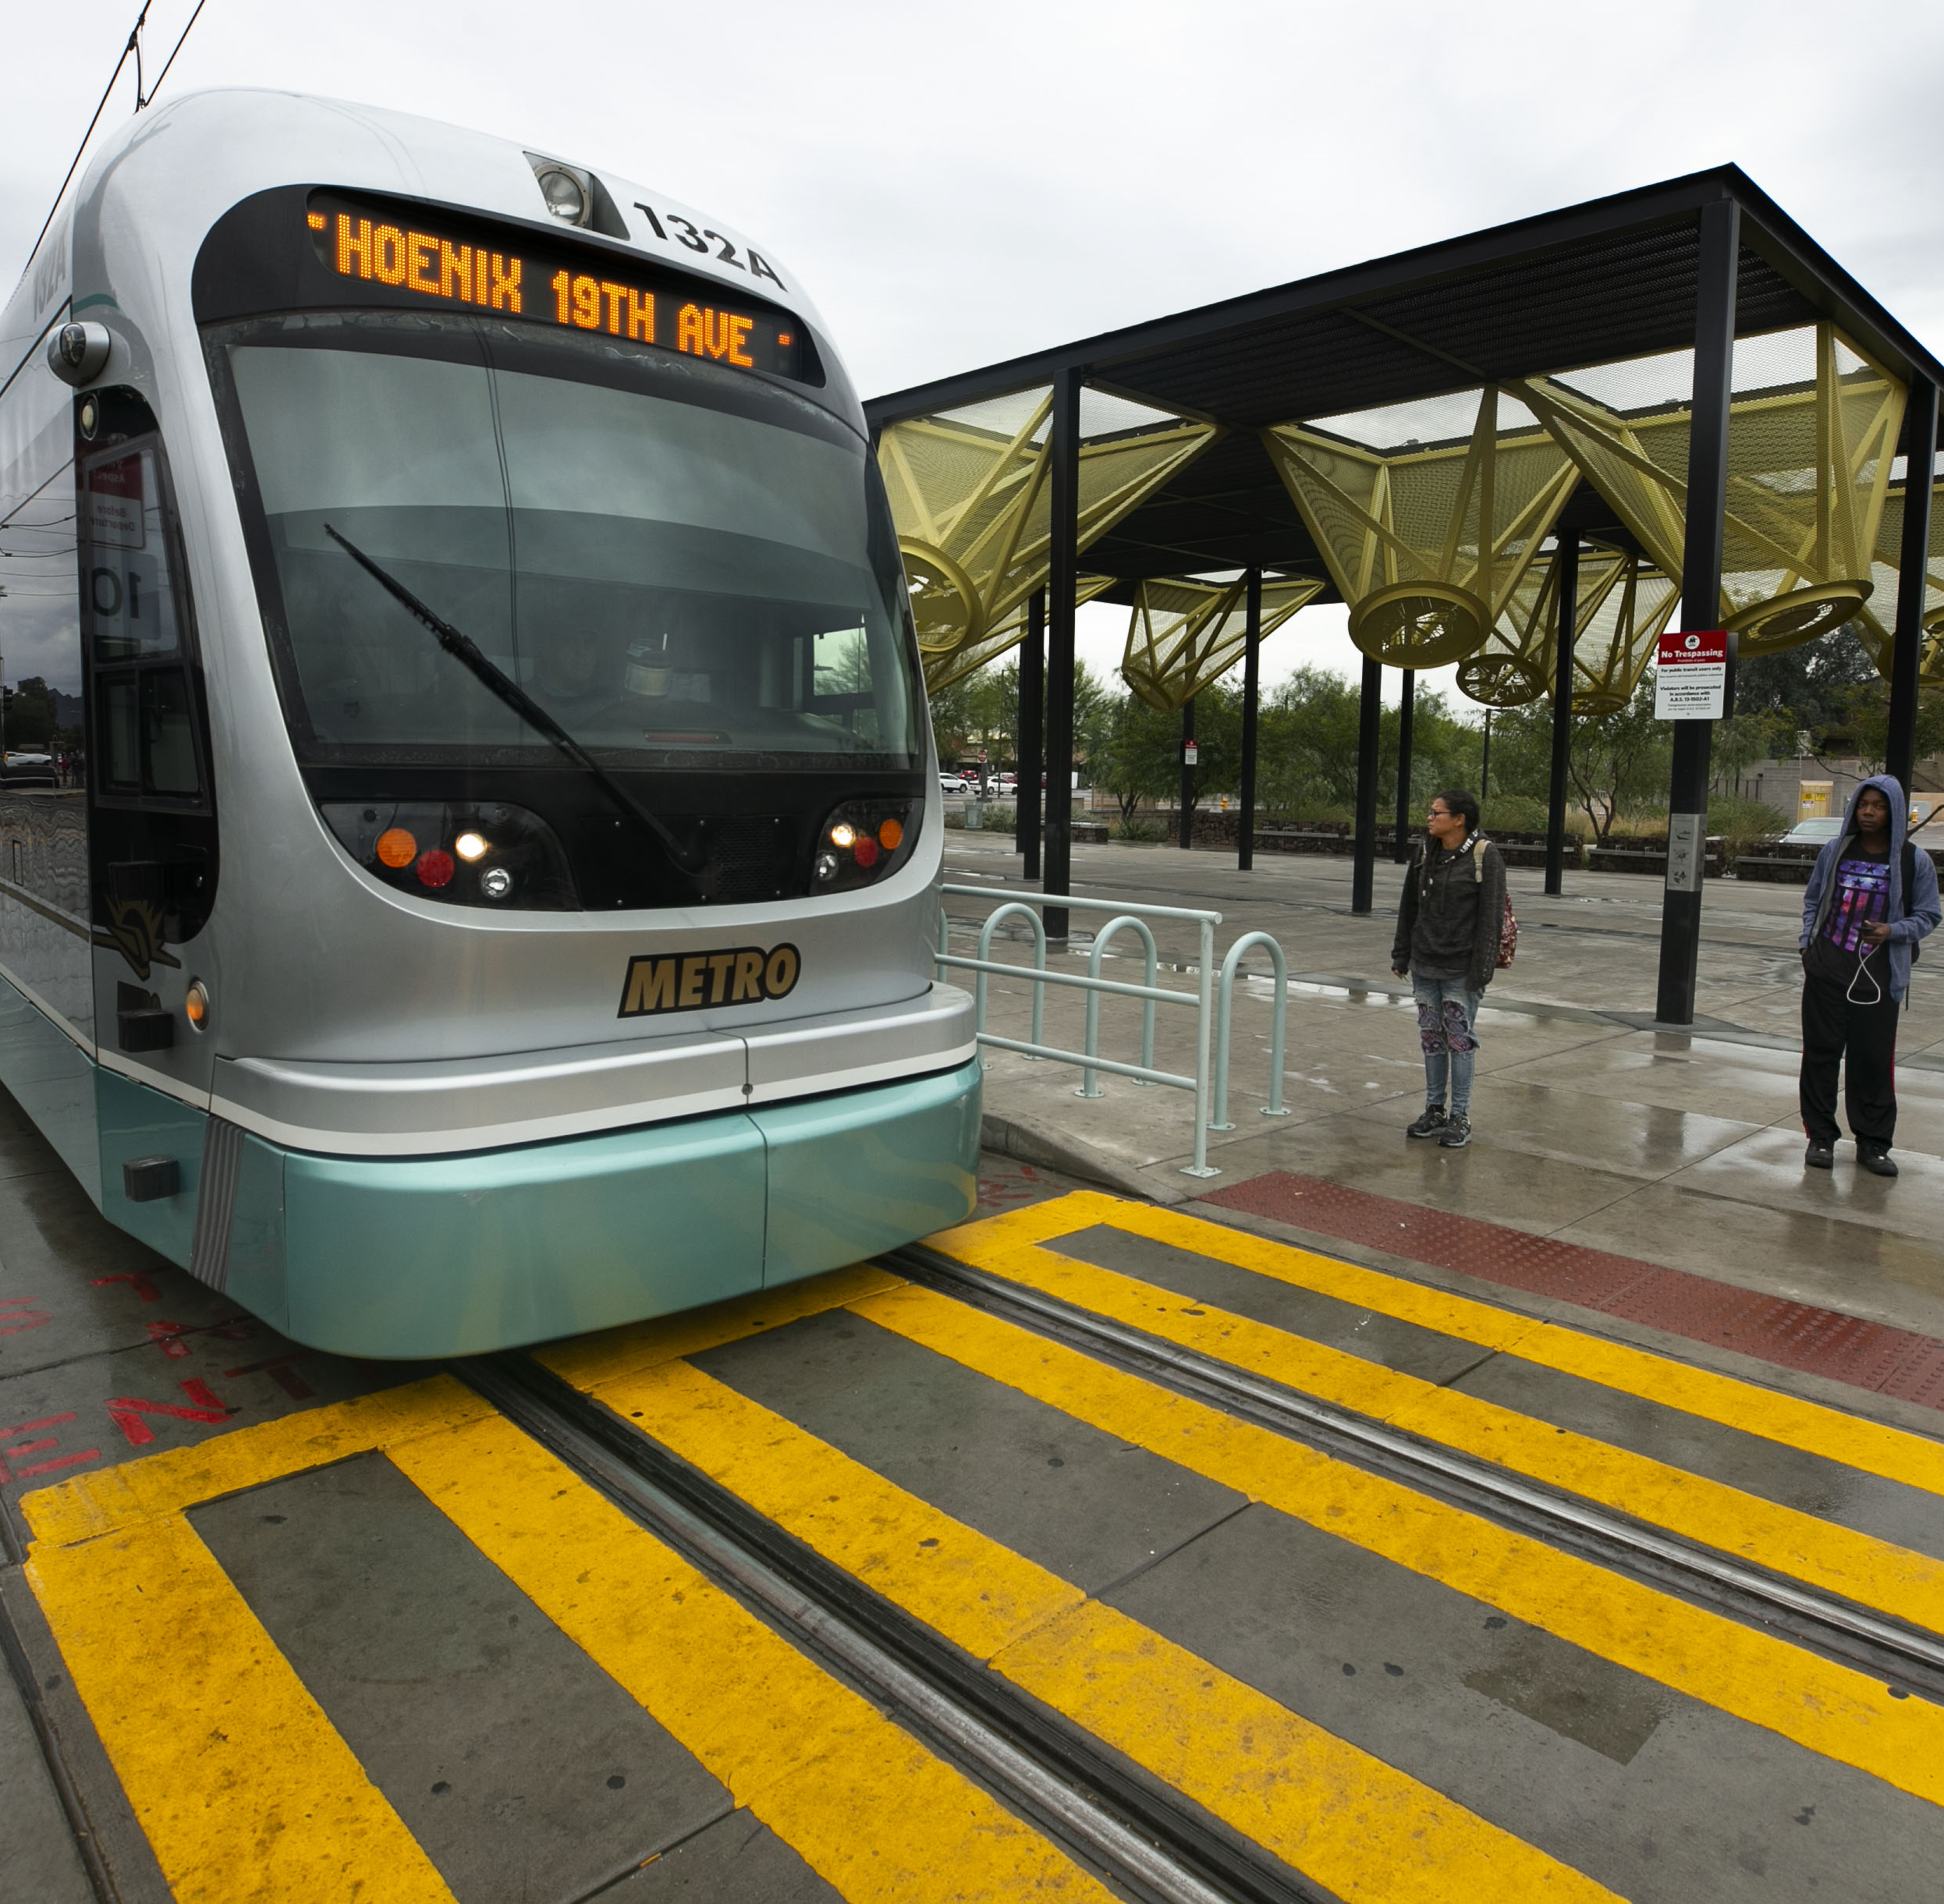 Light rail foes want to undo 3 public votes and 20 years of transit planning. Don't let them